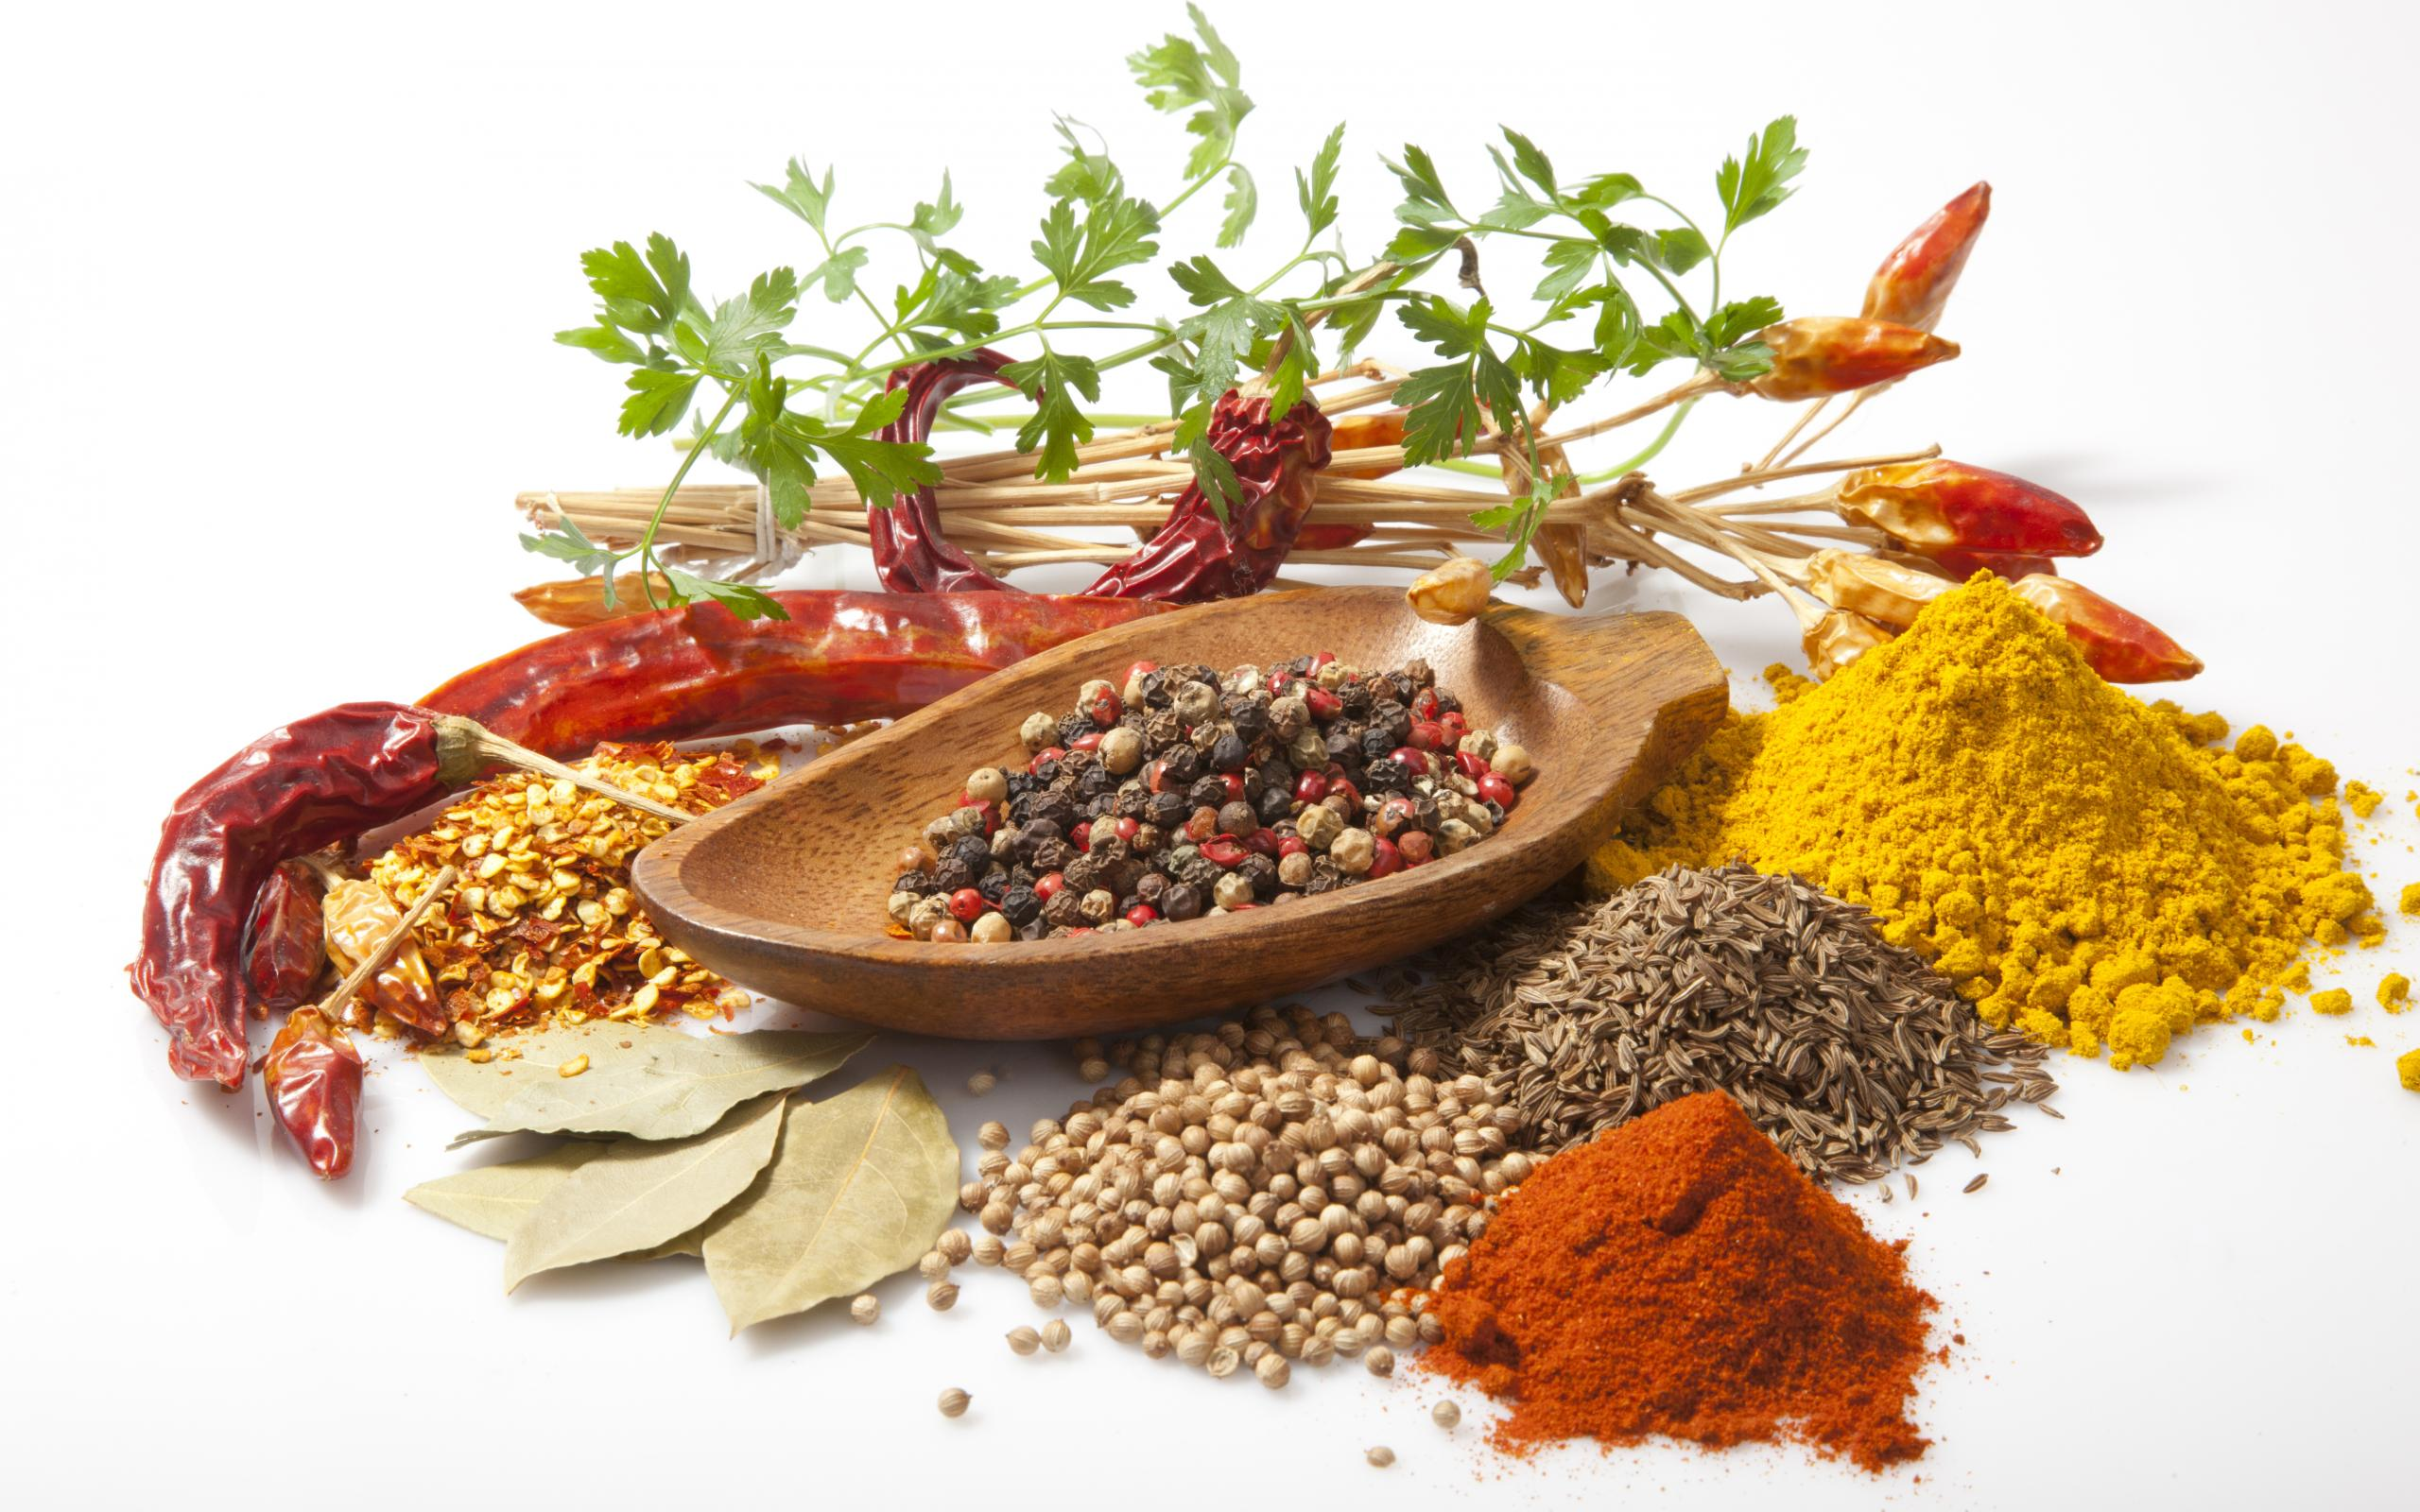 Cuisine Spicy Herbs And Spices Full Hd Wallpaper And Background Image